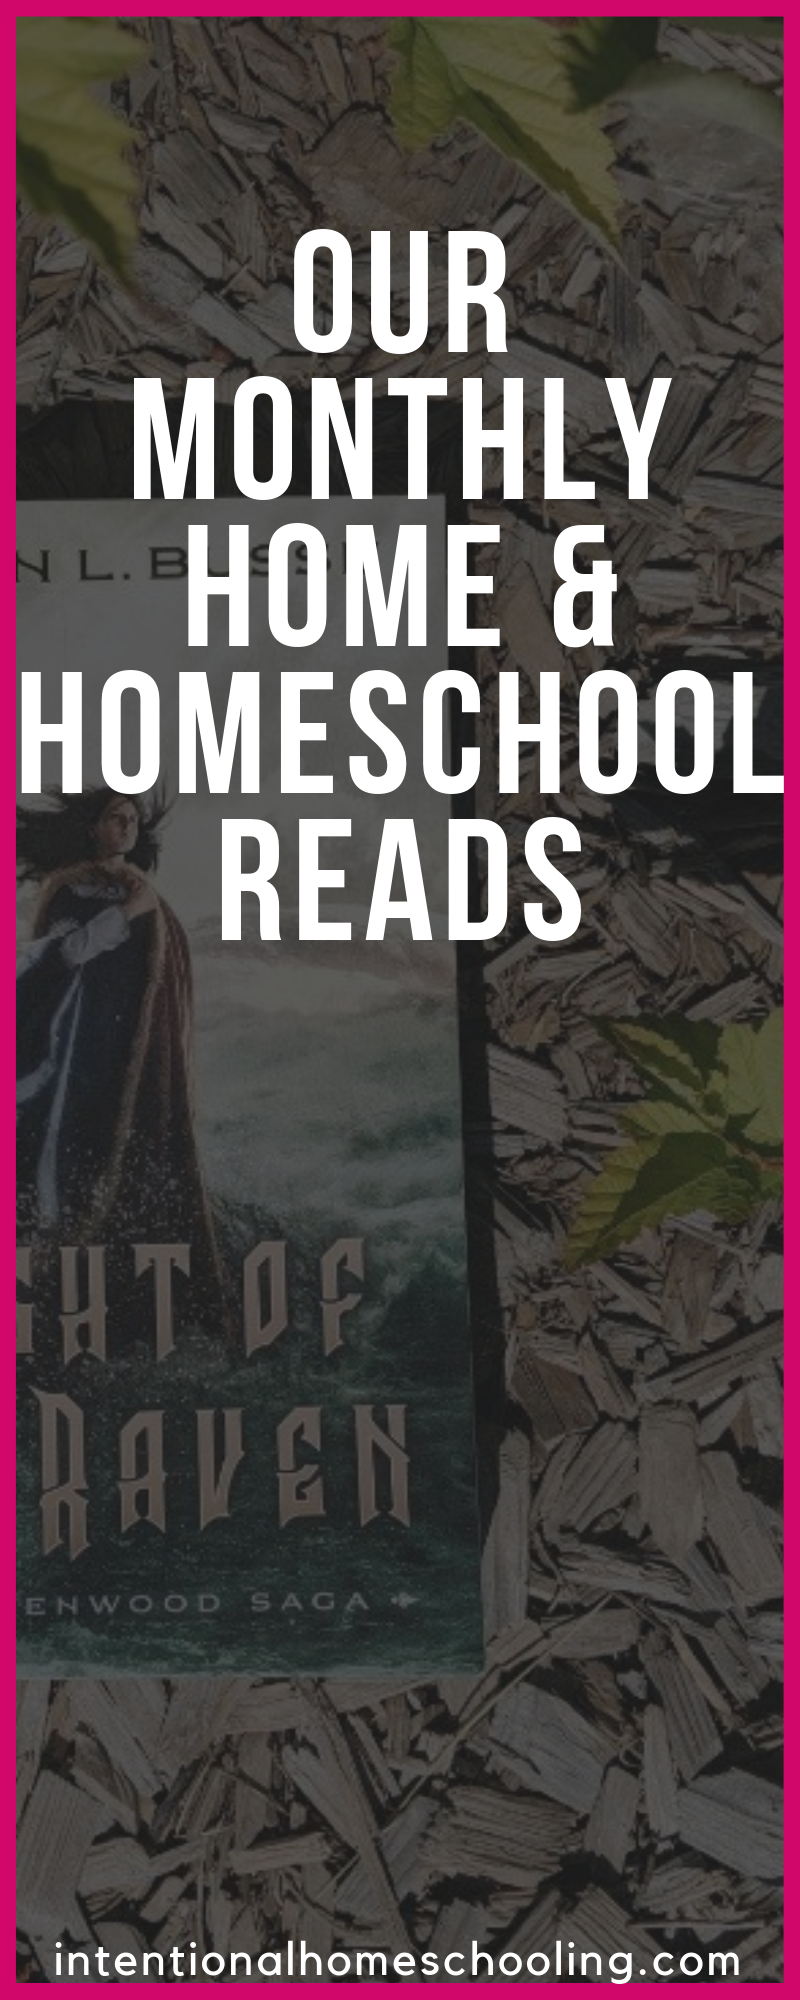 What We've Been Reading in Our Home and Homeschool Lately